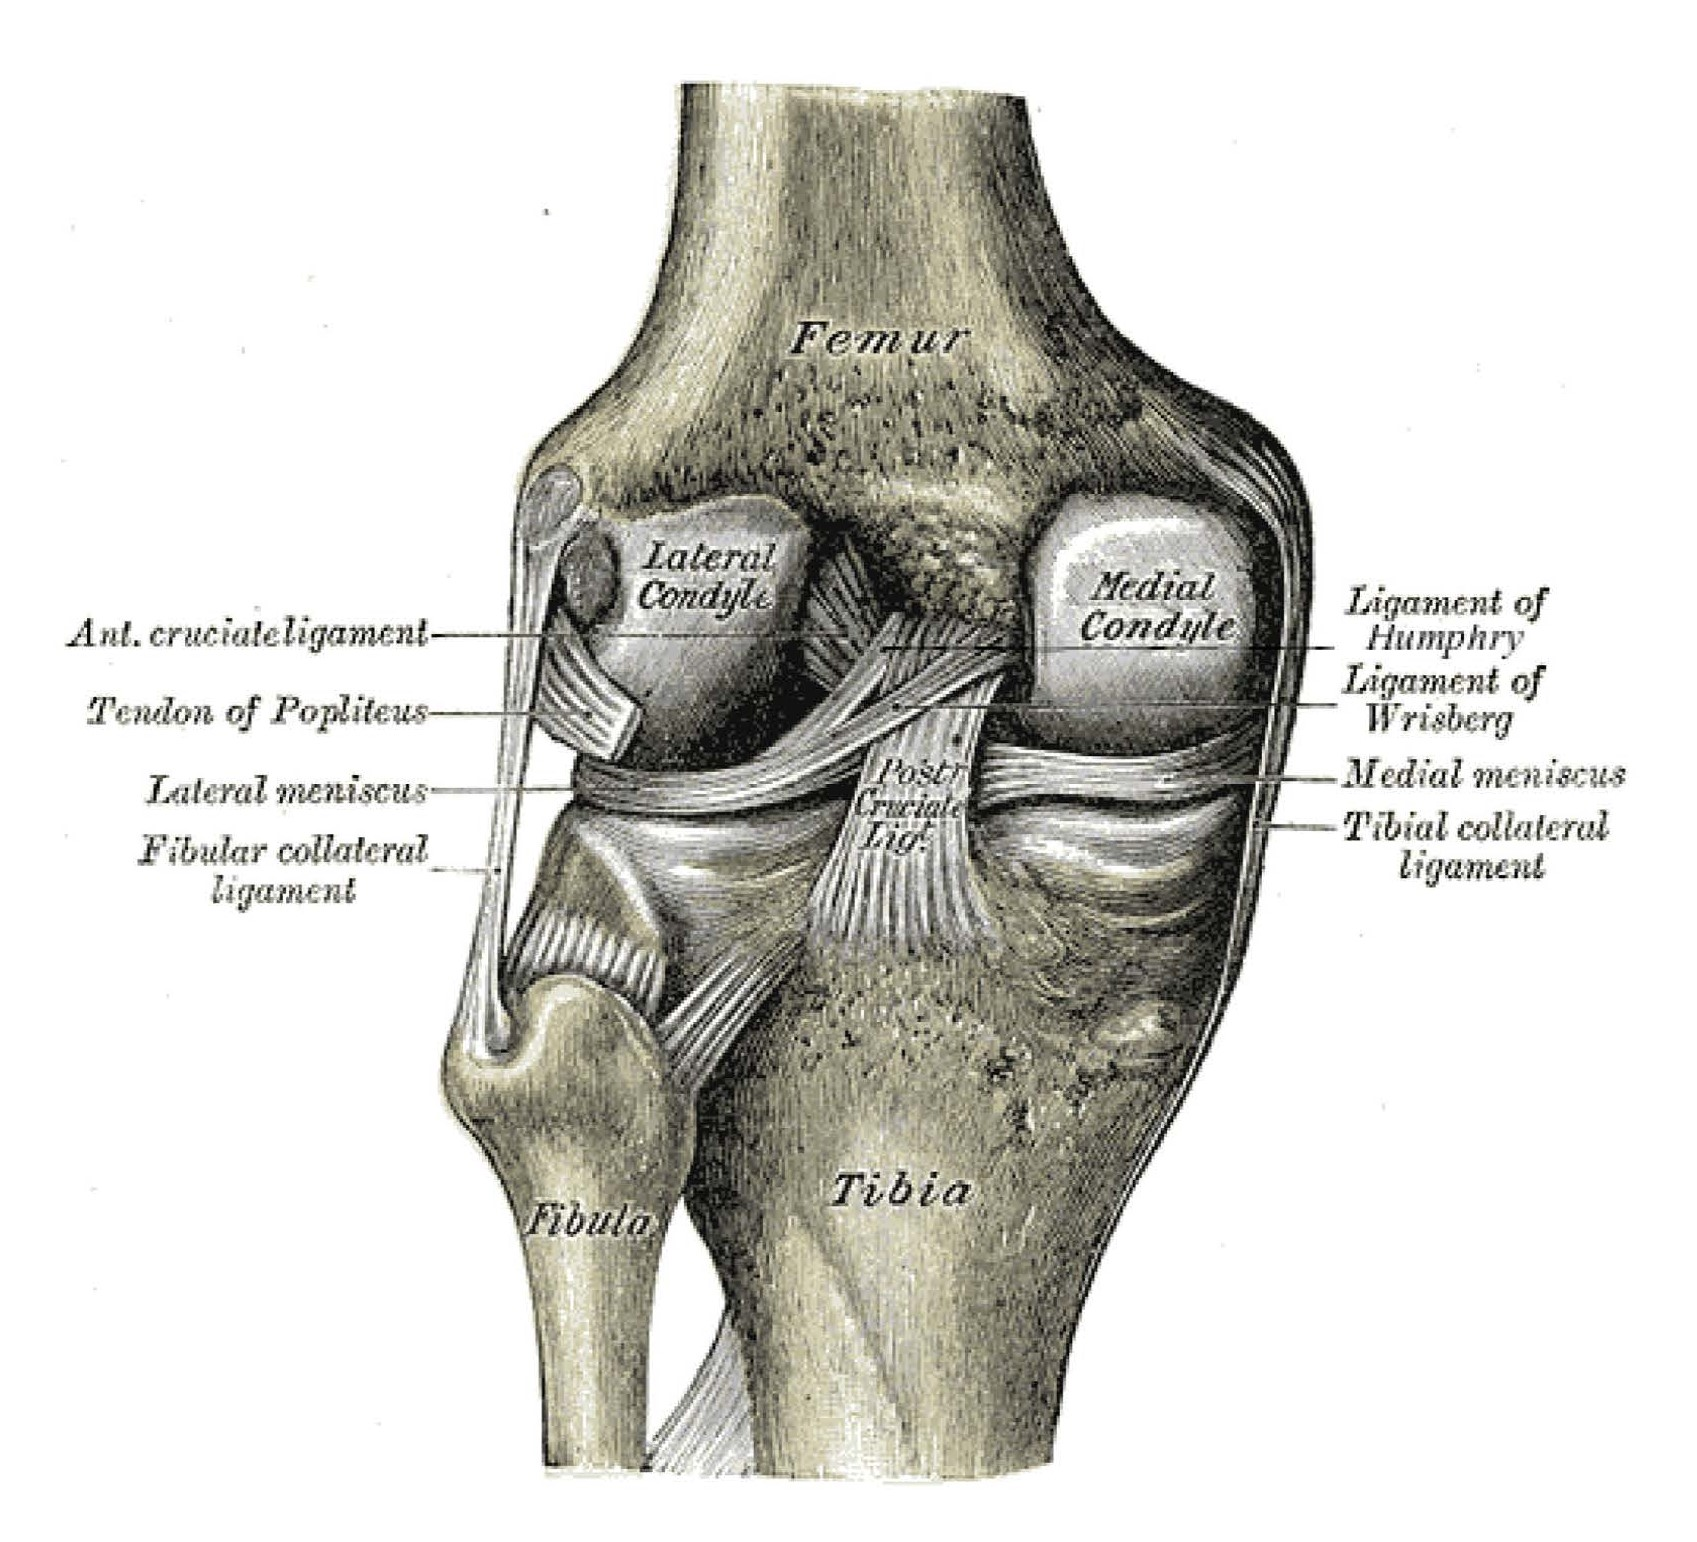 medial collateral ligament injury of the knee - physiopedia, Cephalic Vein